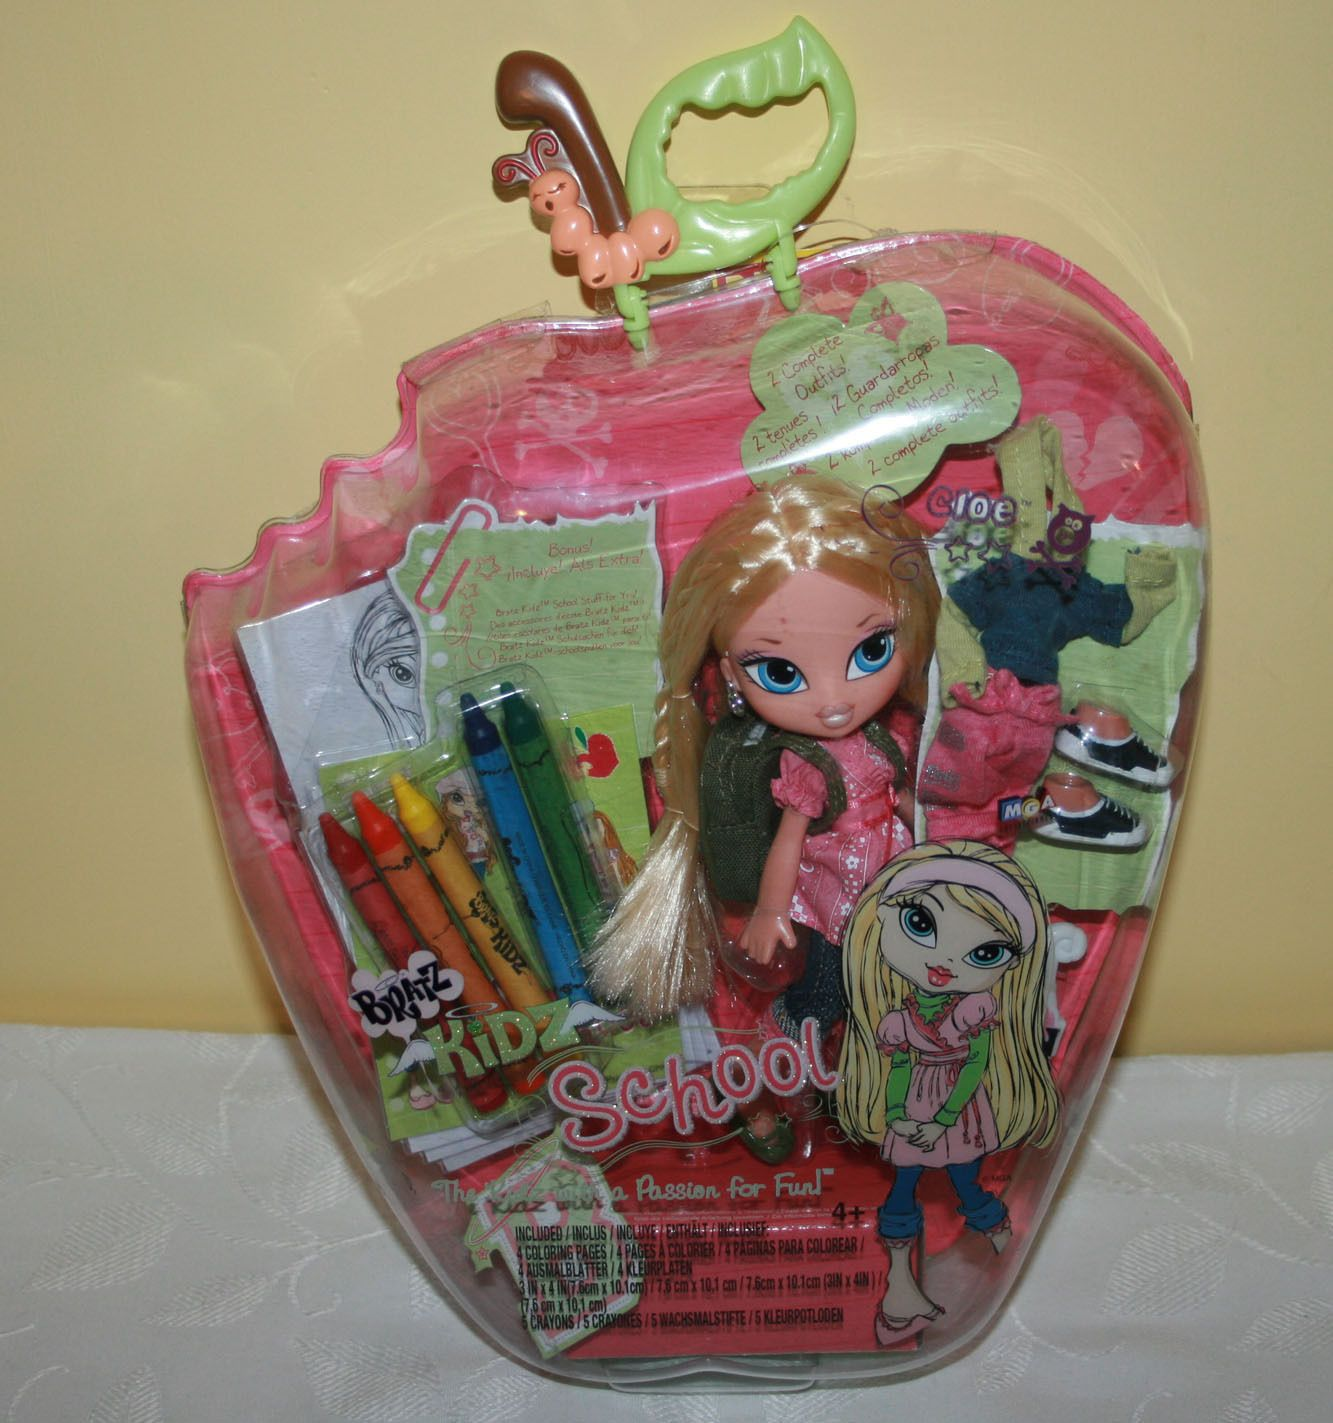 Brand New In Box Bratz Kidz Cloe Doll School Is Cool Girl In Clothes Shoes 4 99 3 Vintage Dolls Childhood Toys Dolls